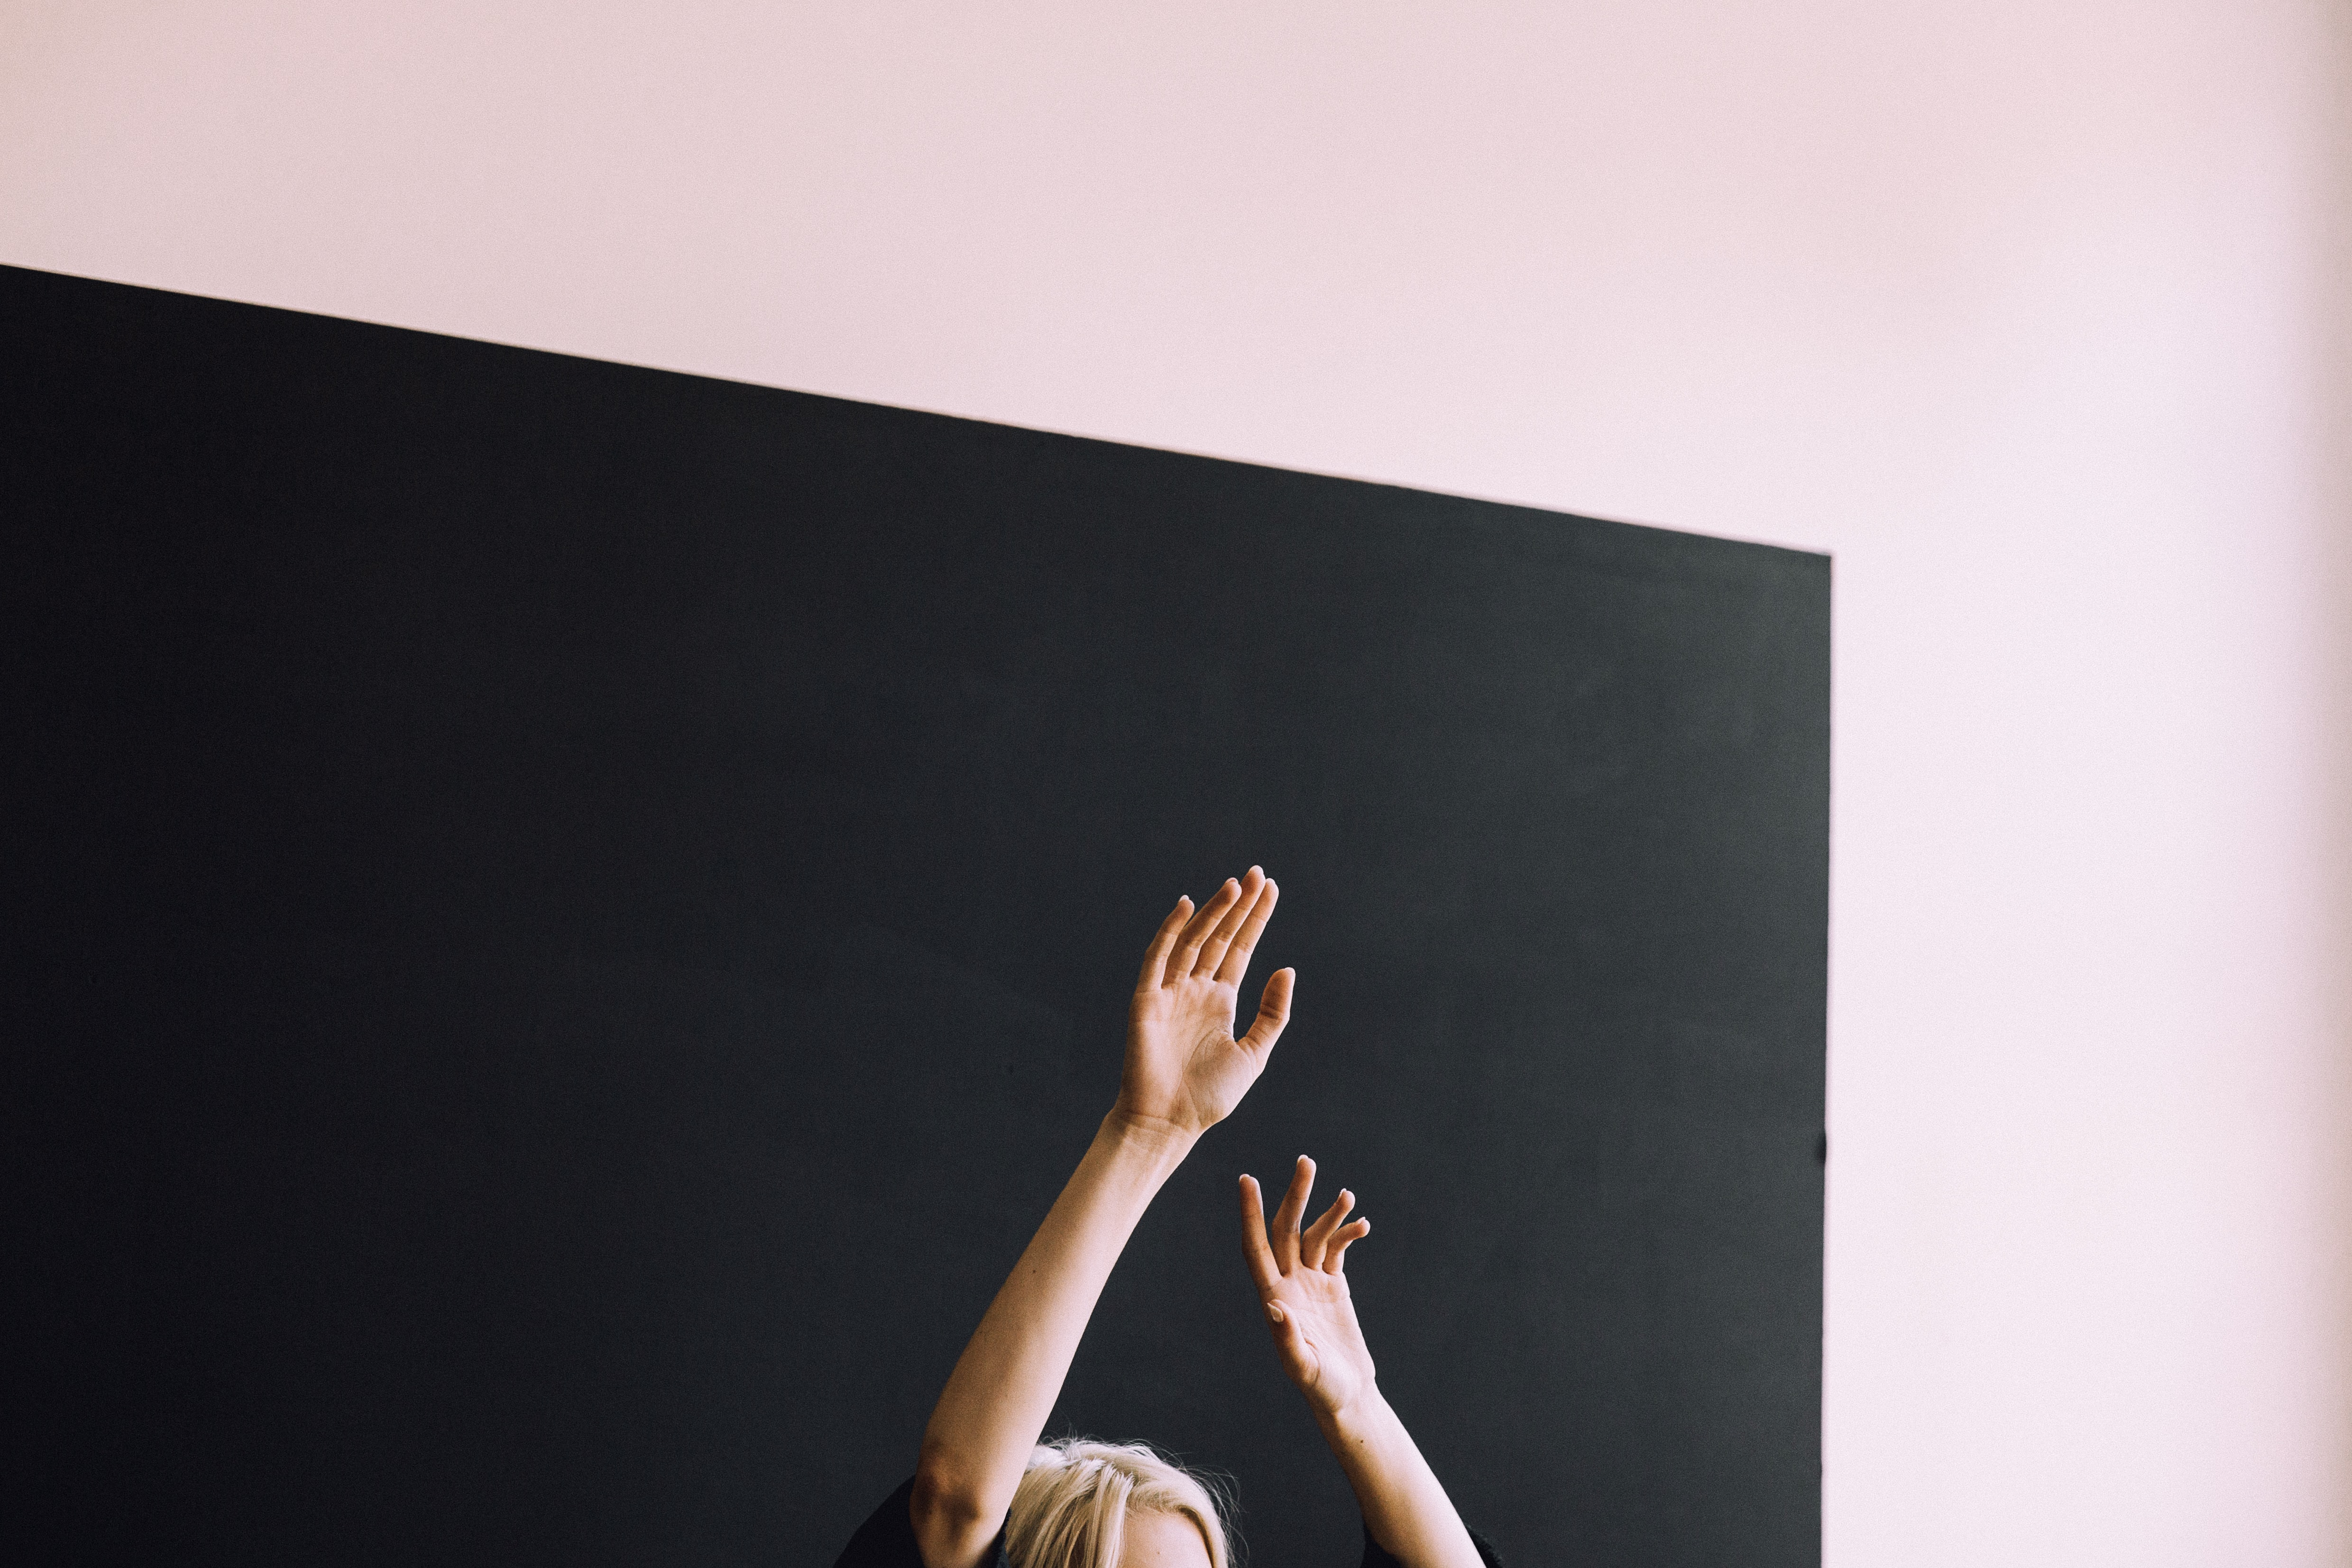 person raising both hands